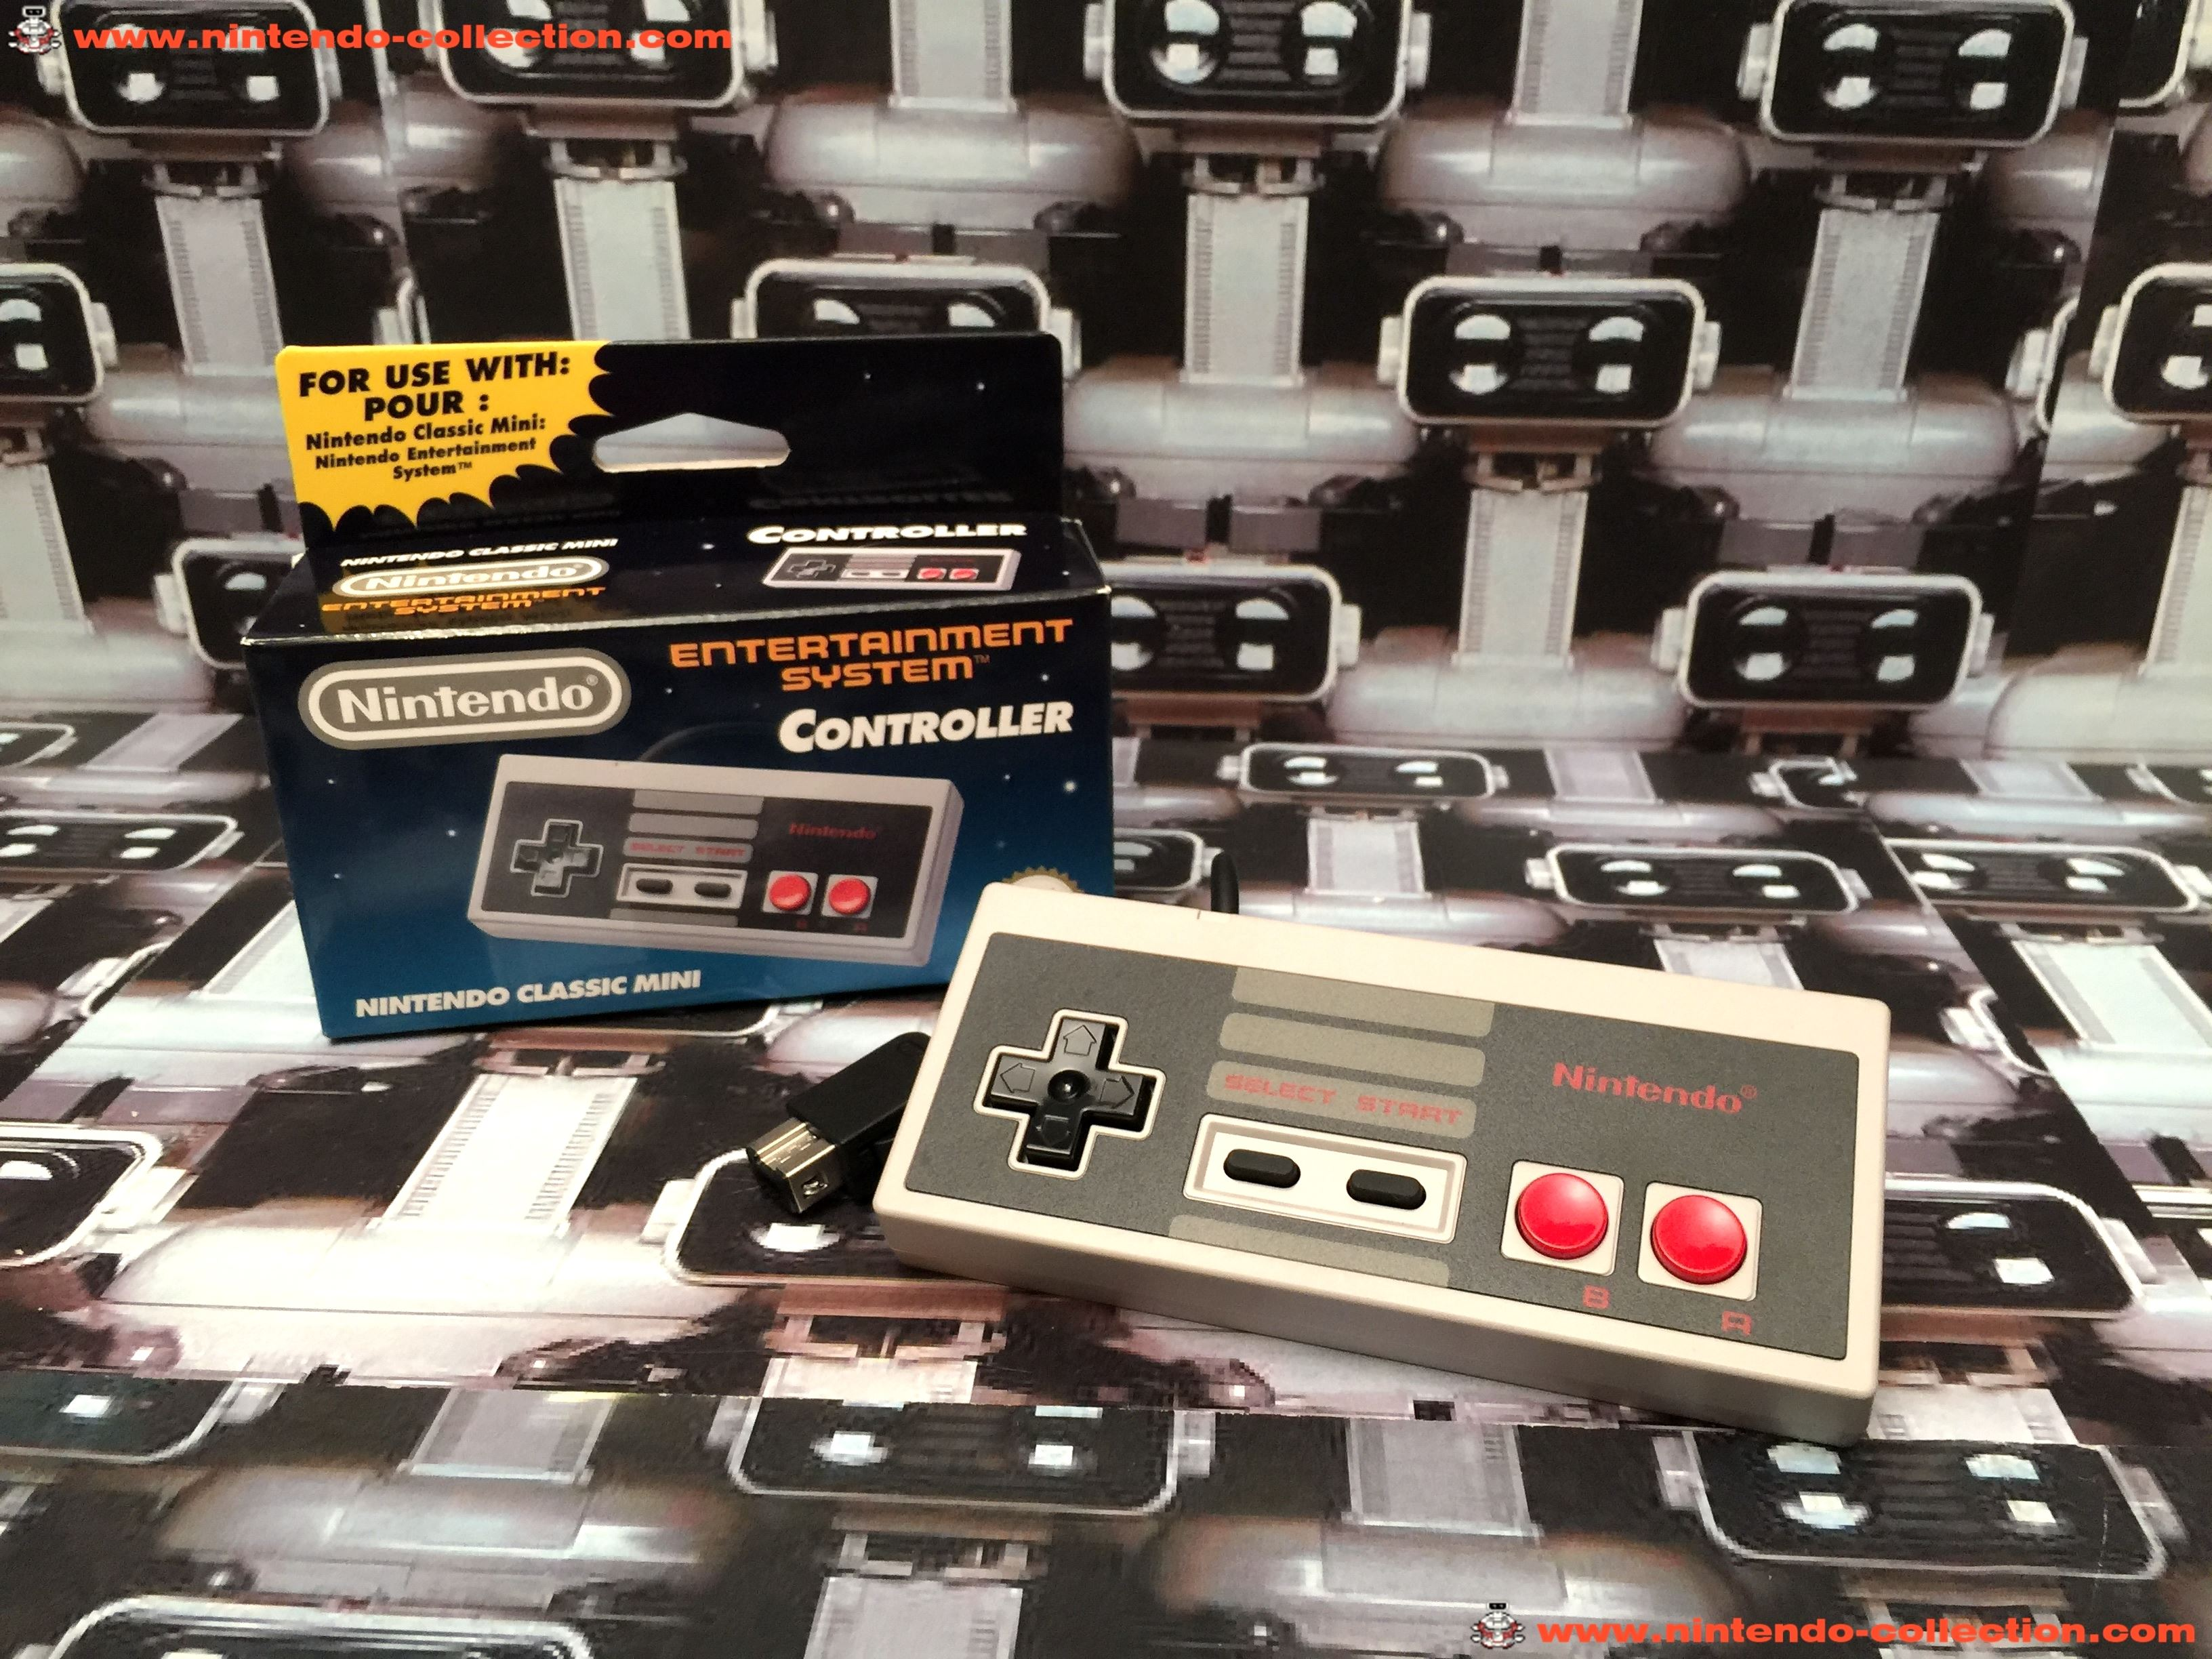 www.nintendo-collection.com - Nintendo Classic Mini Controller Manette Nes Nintendo Entertainment sy